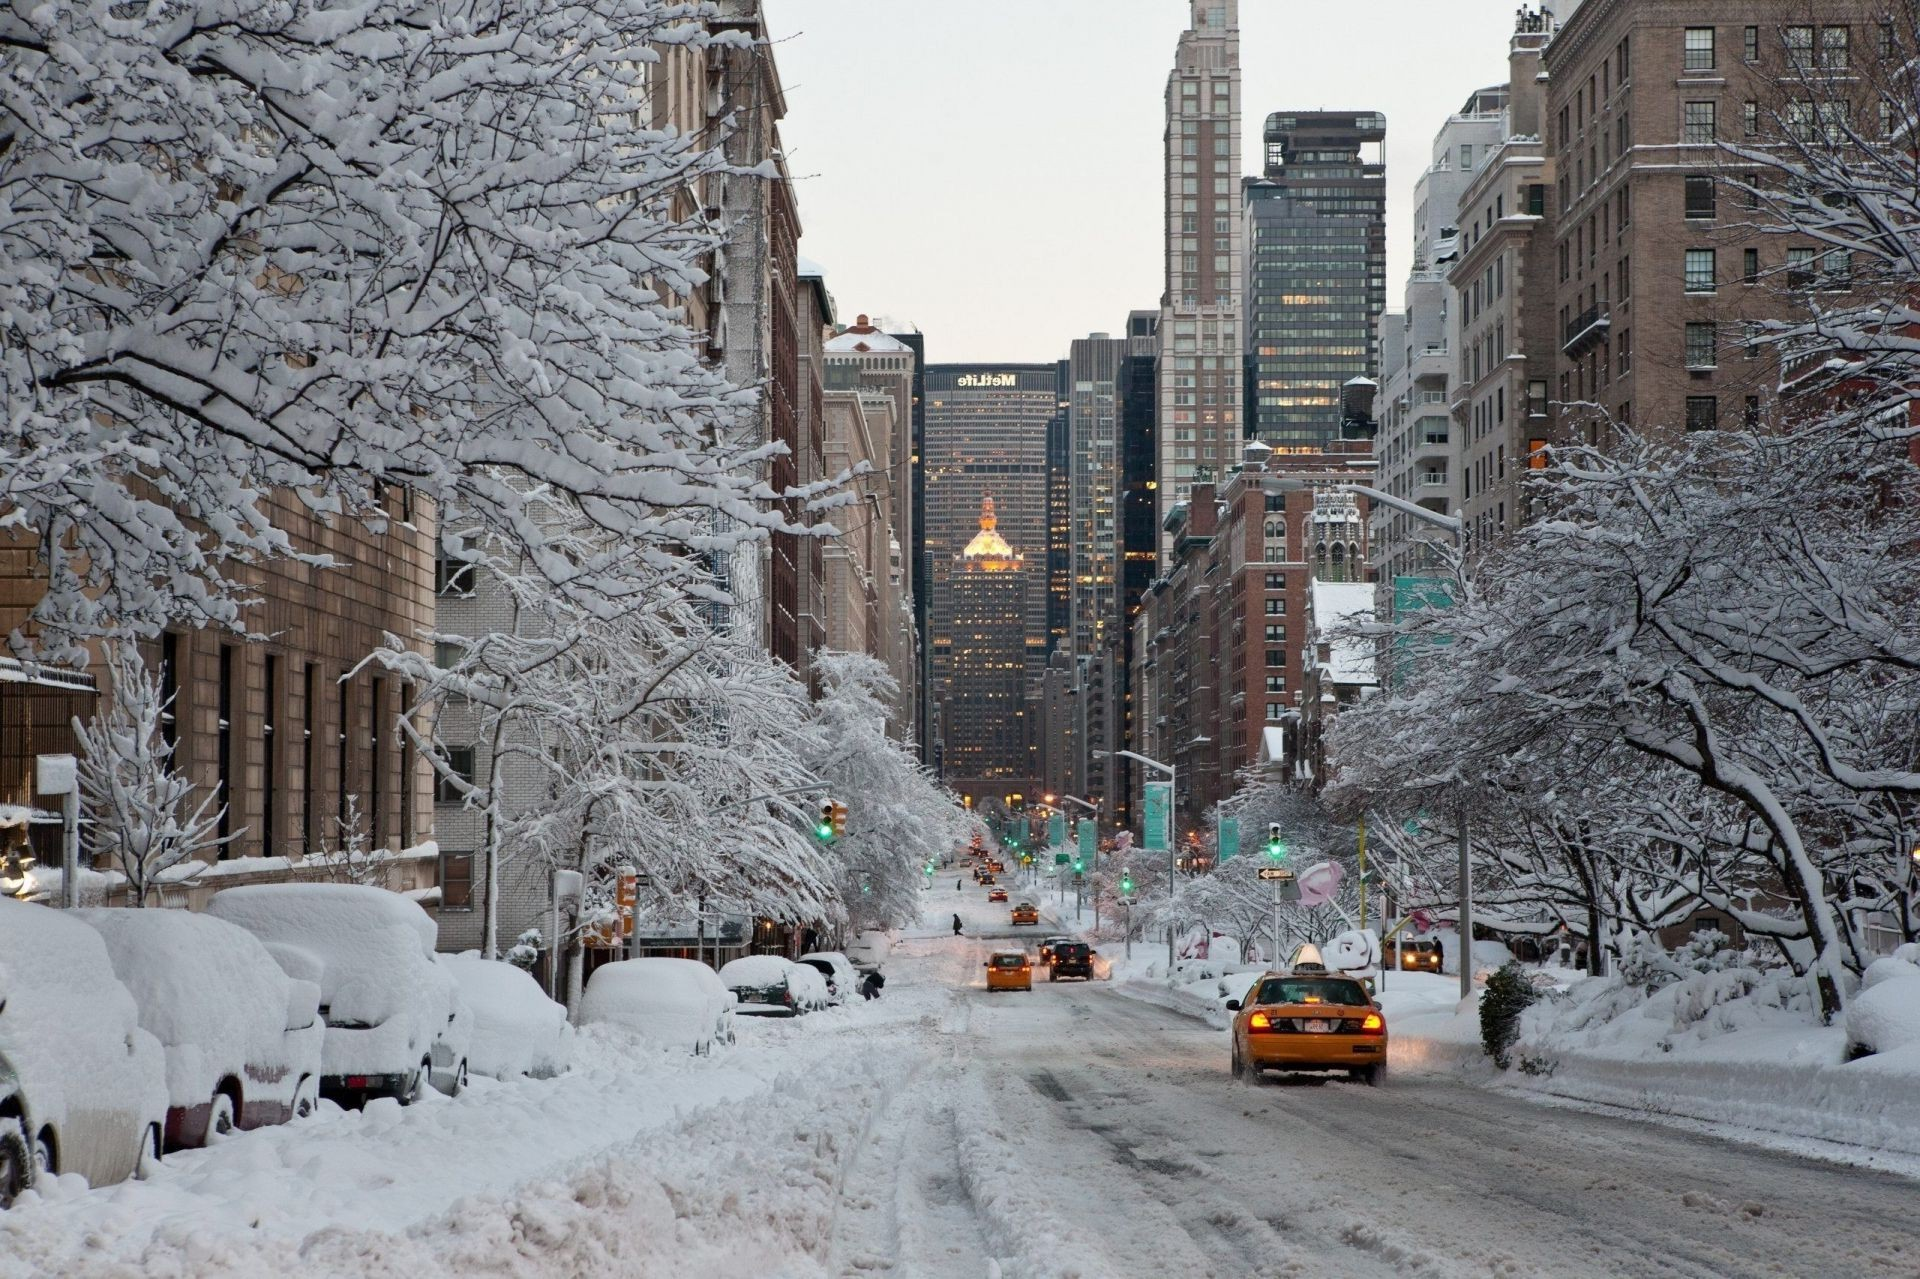 nyc winter scenes wallpaper wallpapersafari